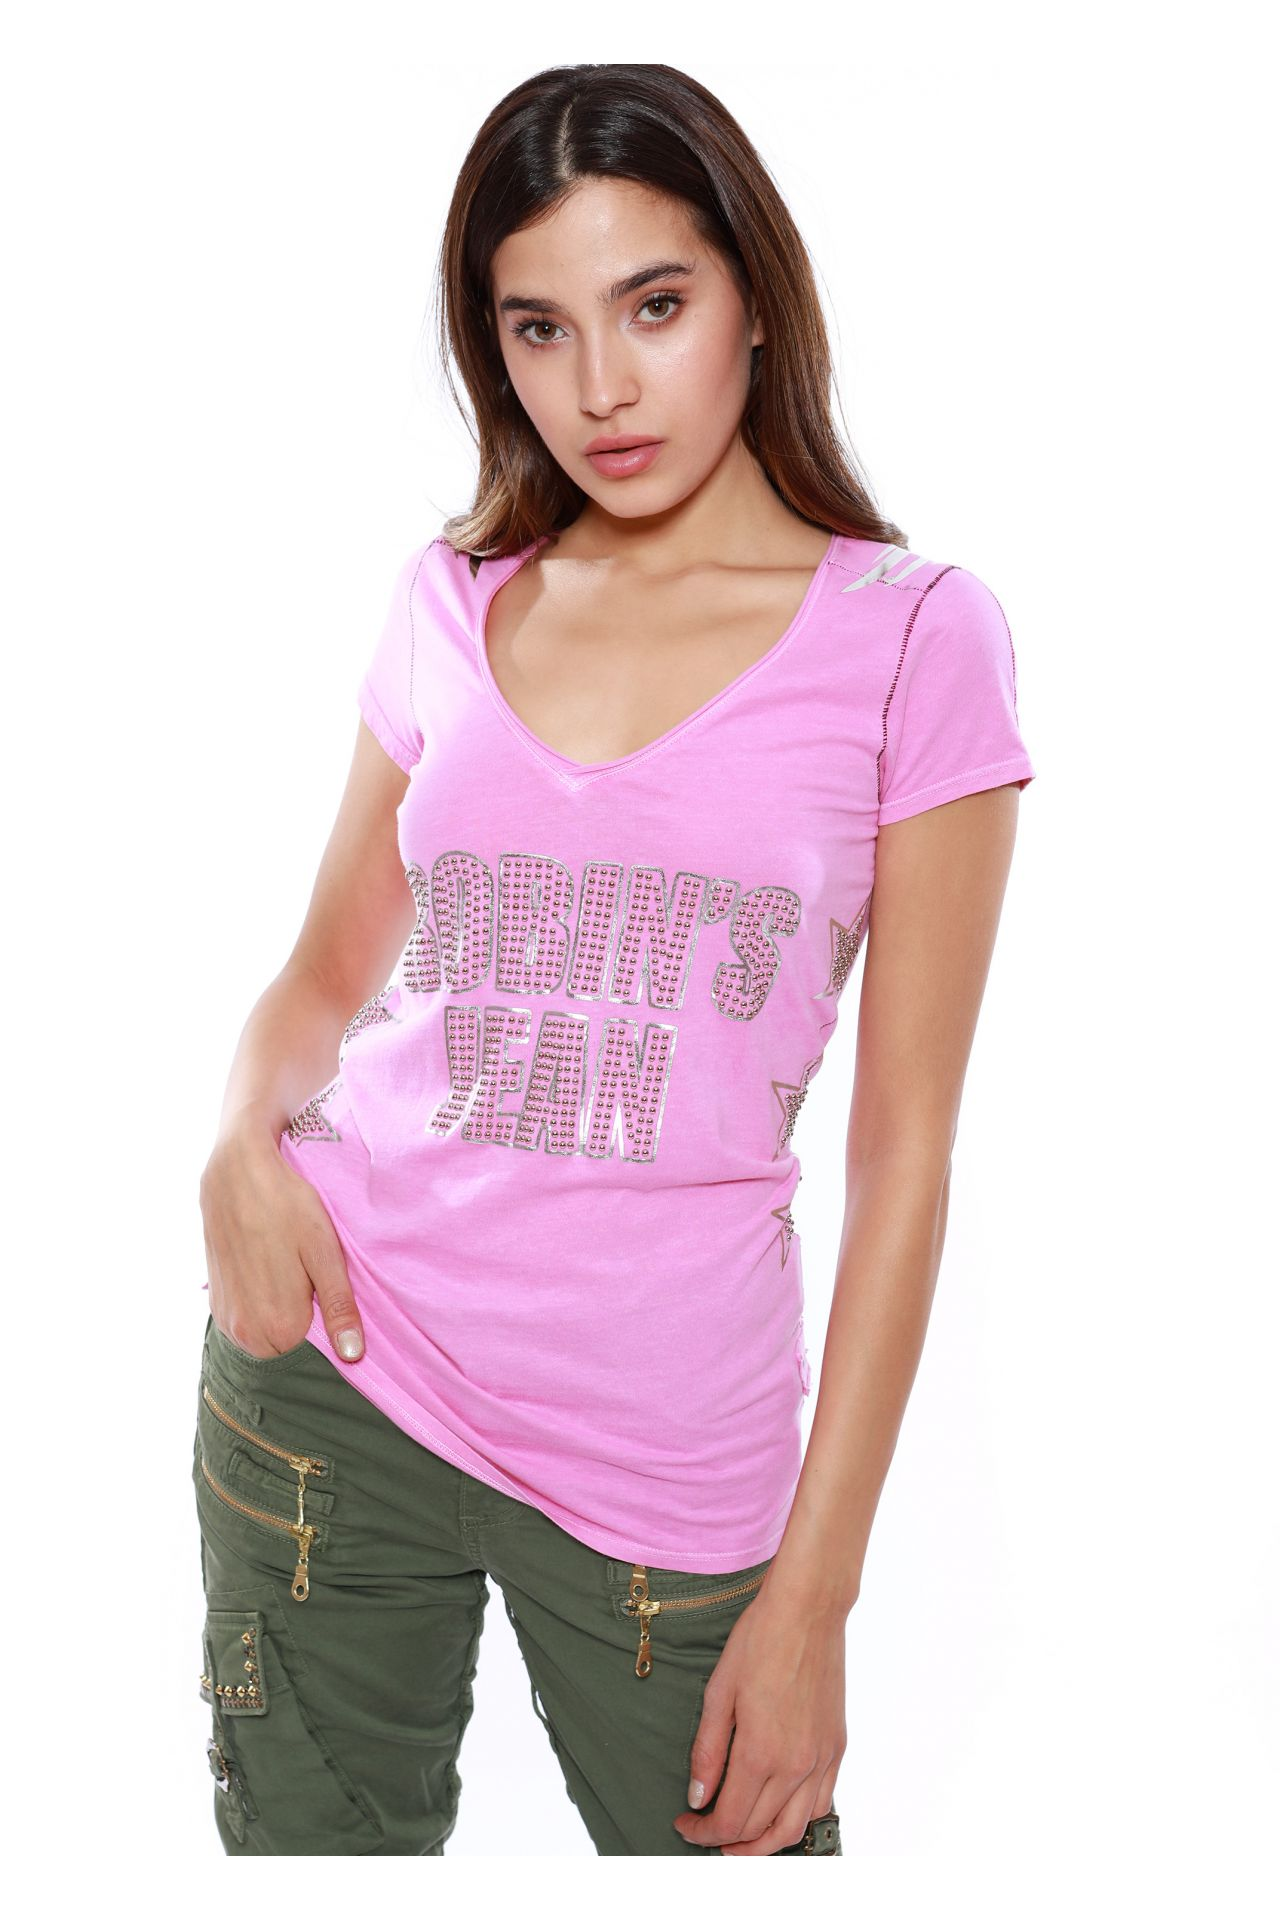 LAZER CUT WINGS STUDDED TEE IN HOT PINK